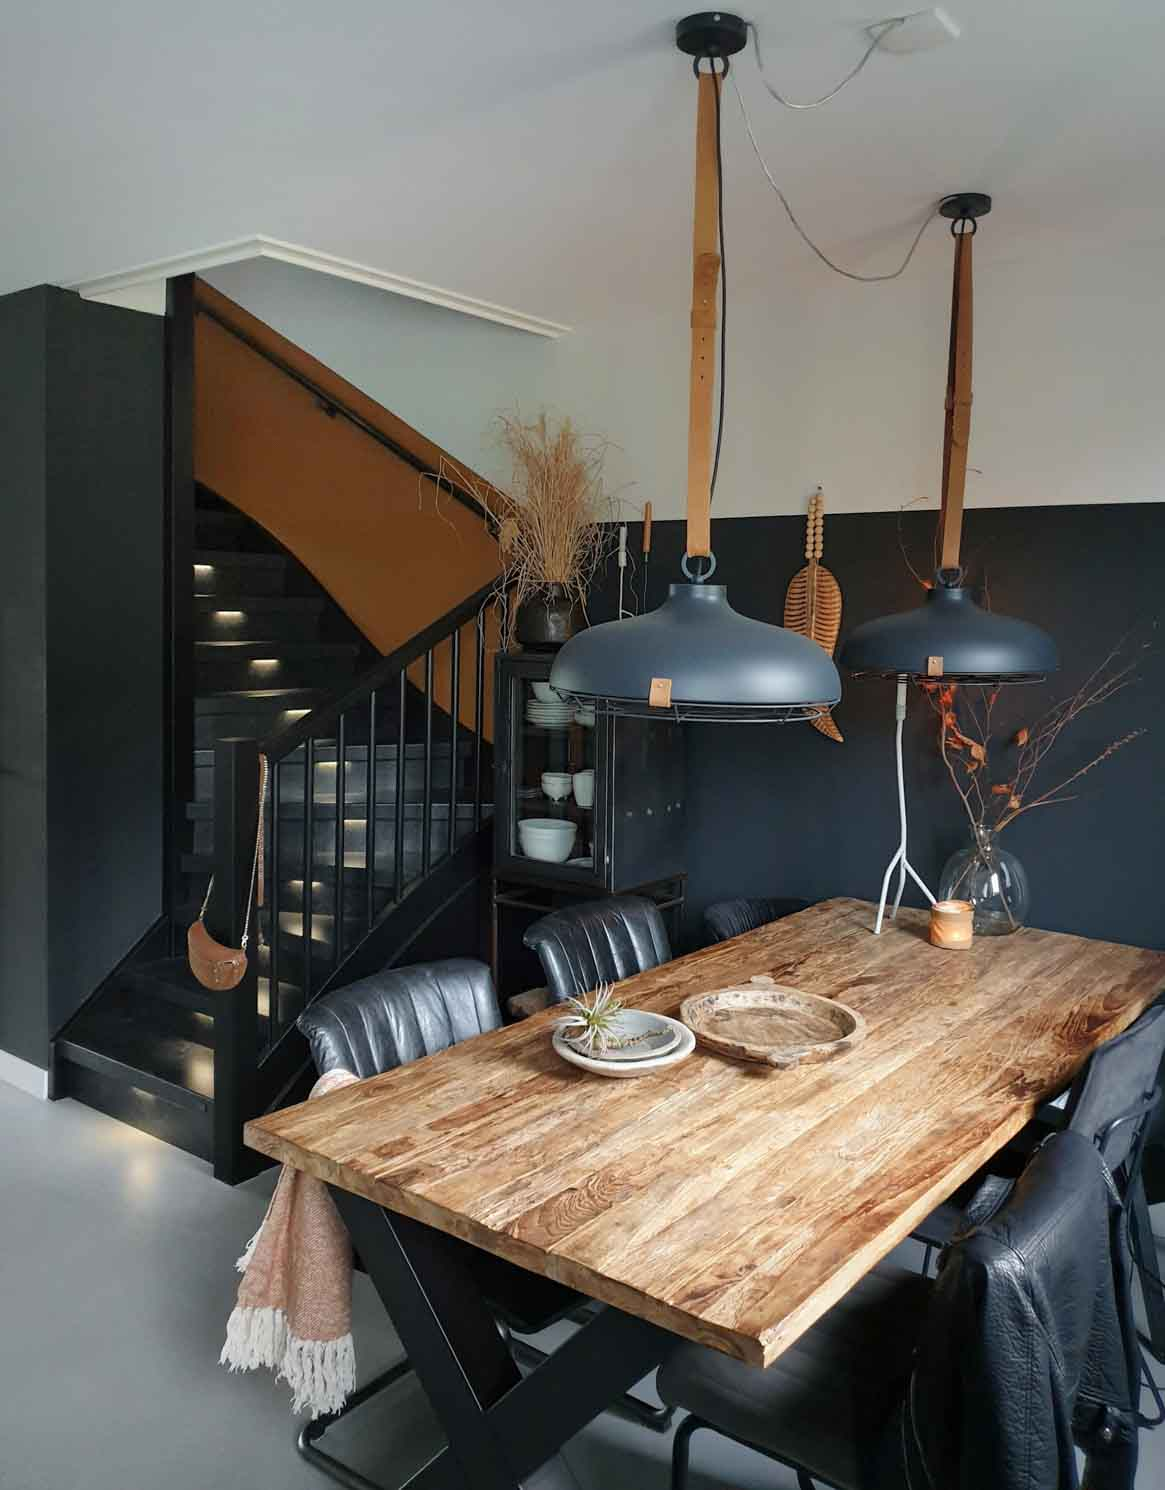 An industrial interior at Judith Huizedop´s home, wood and metal table, black leather chairs